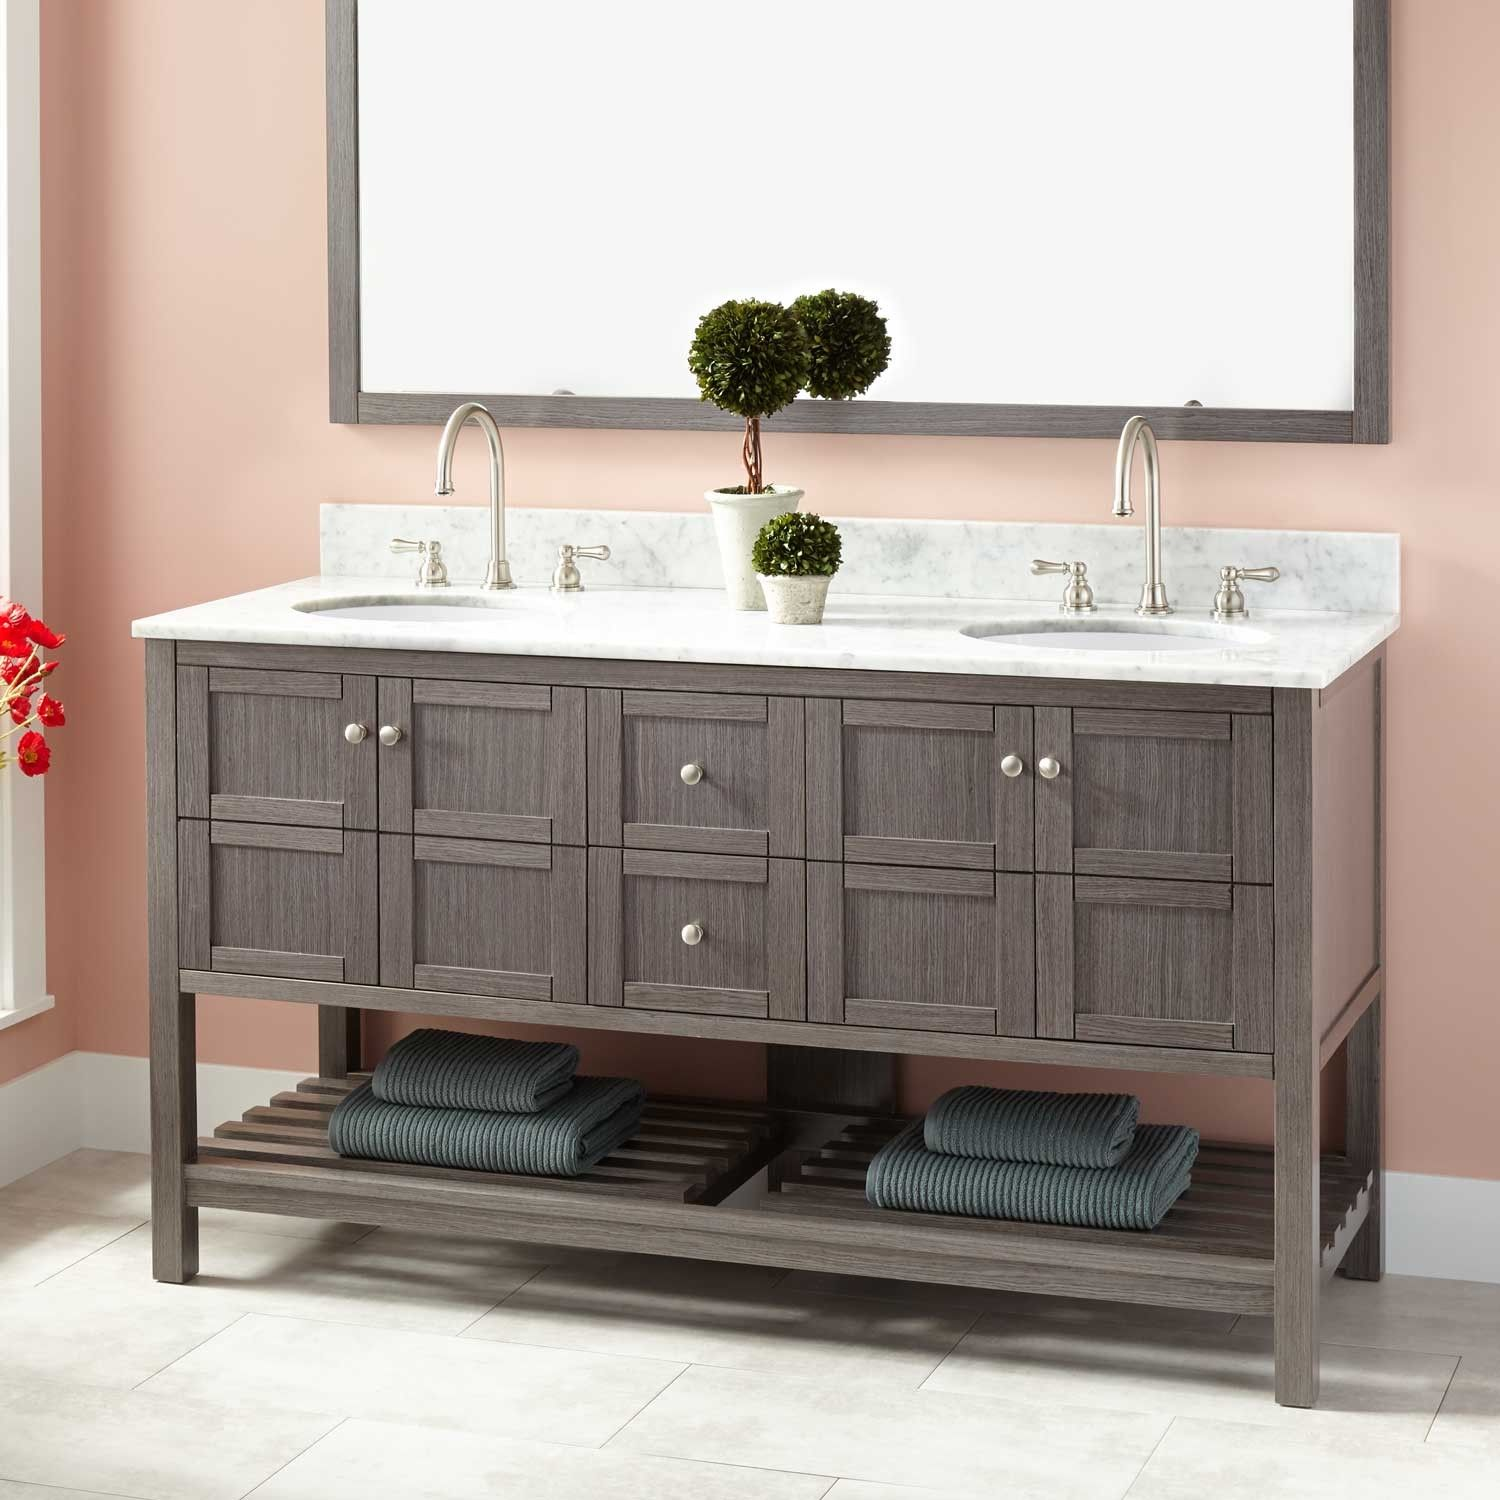 Best 60 Everett Vanity For Undermount Sink Gray Pear 1785 400 x 300